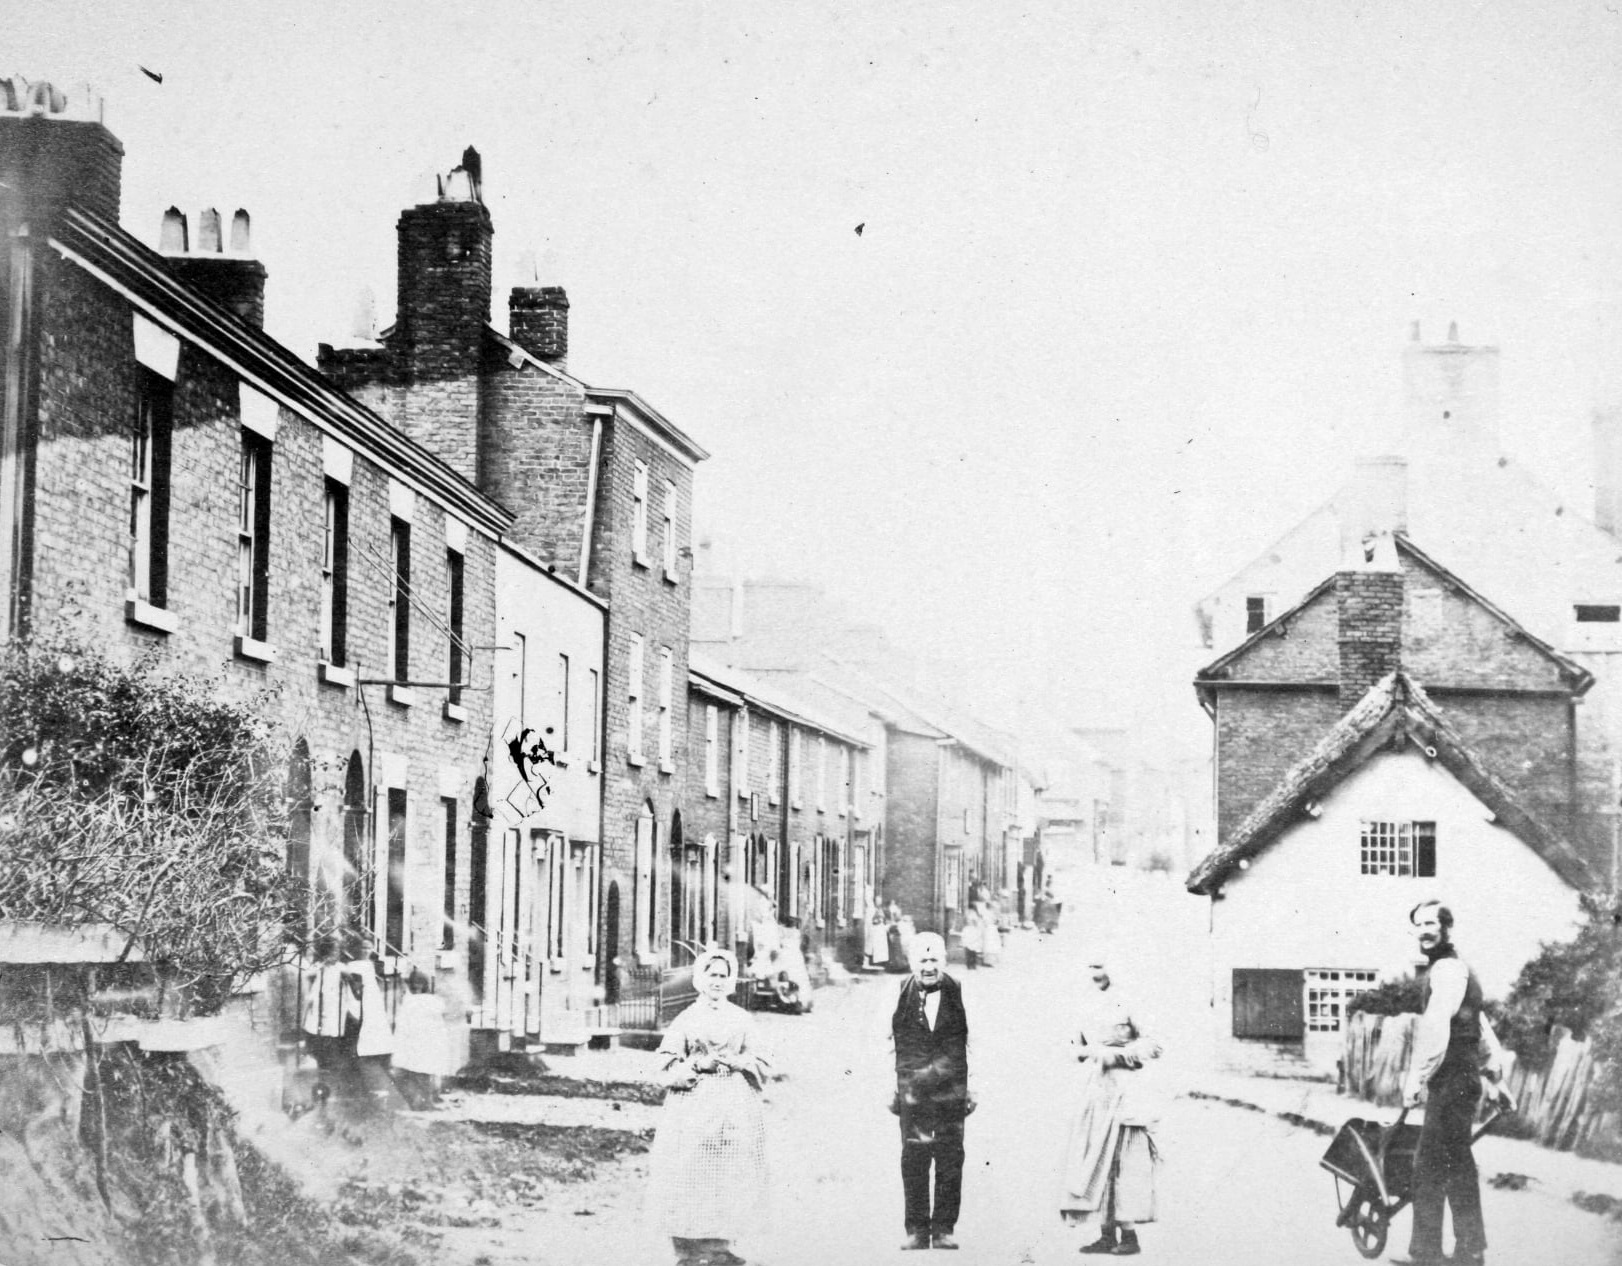 King Street, Knutsford with people in the road.